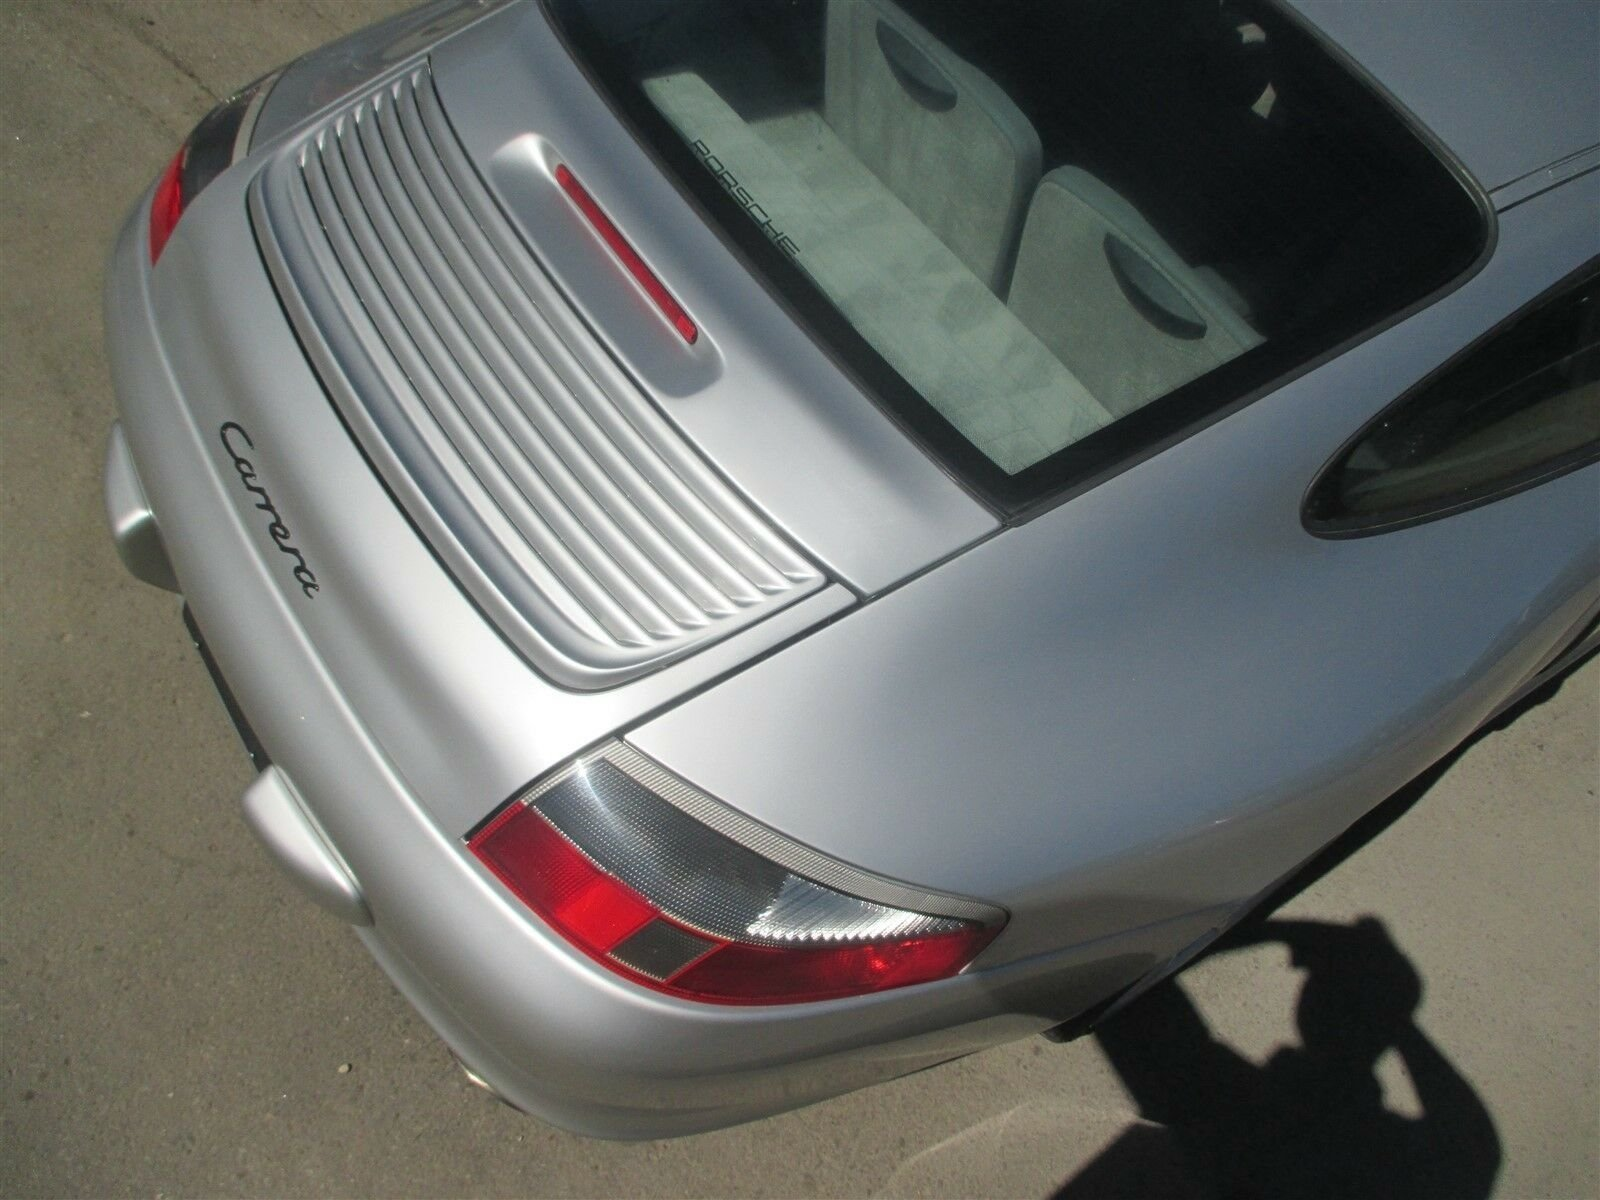 03 Carrera 911 RWD Porsche 996 Coupe Parting Our car parts 36,382